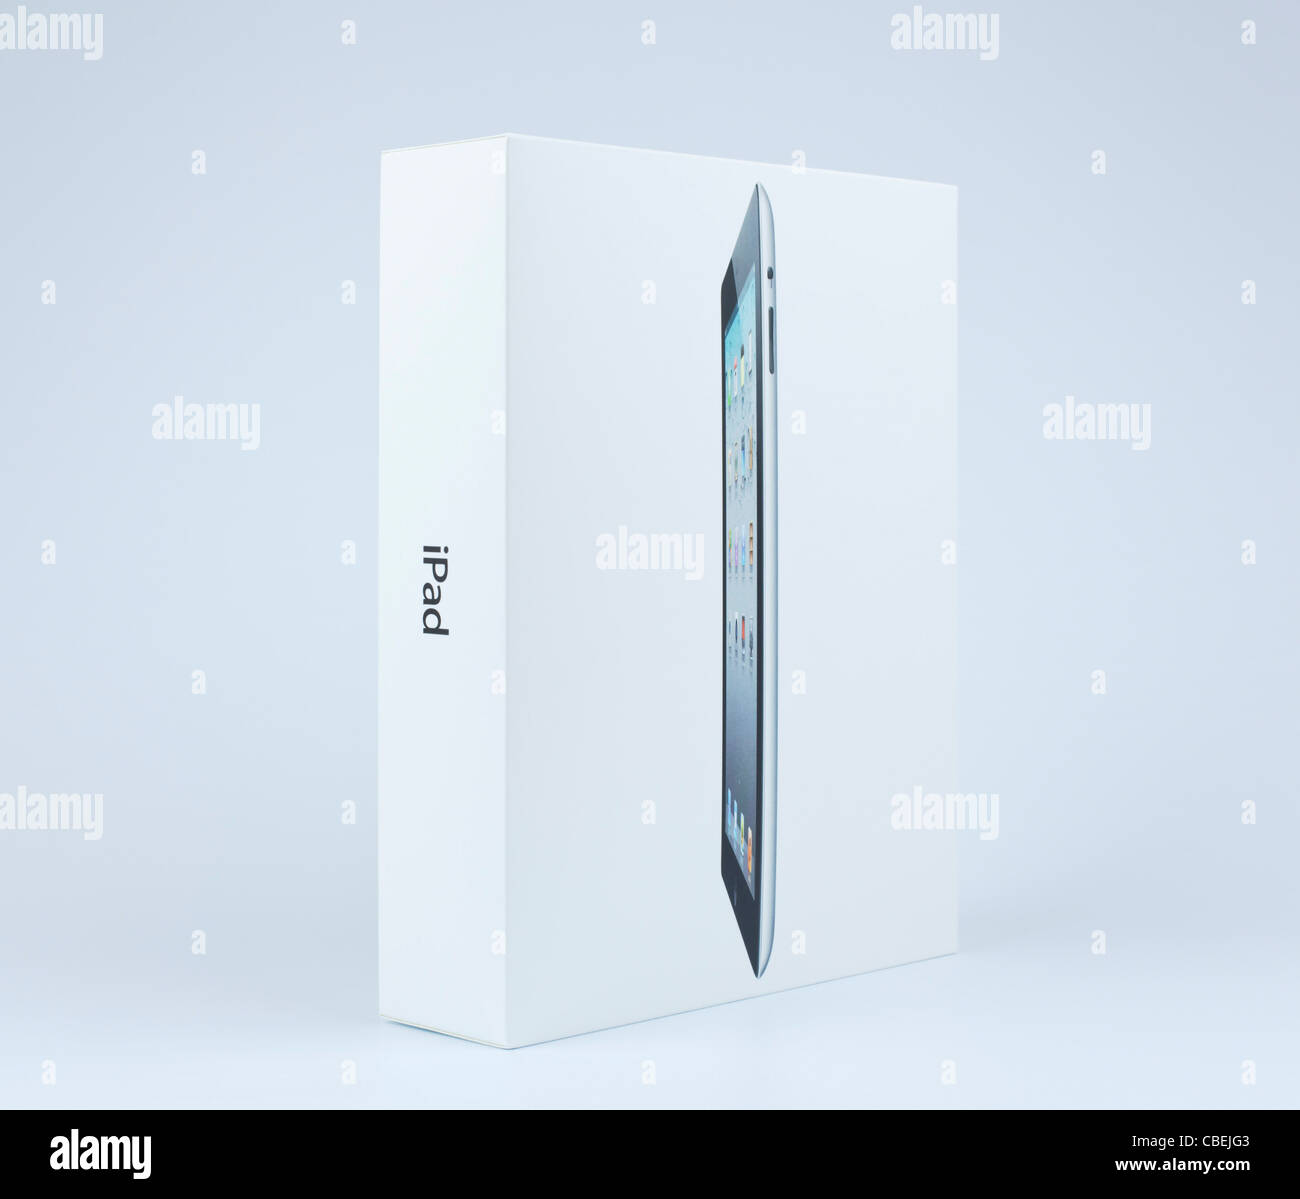 L'Ipad 2 case sur un fond blanc Photo Stock